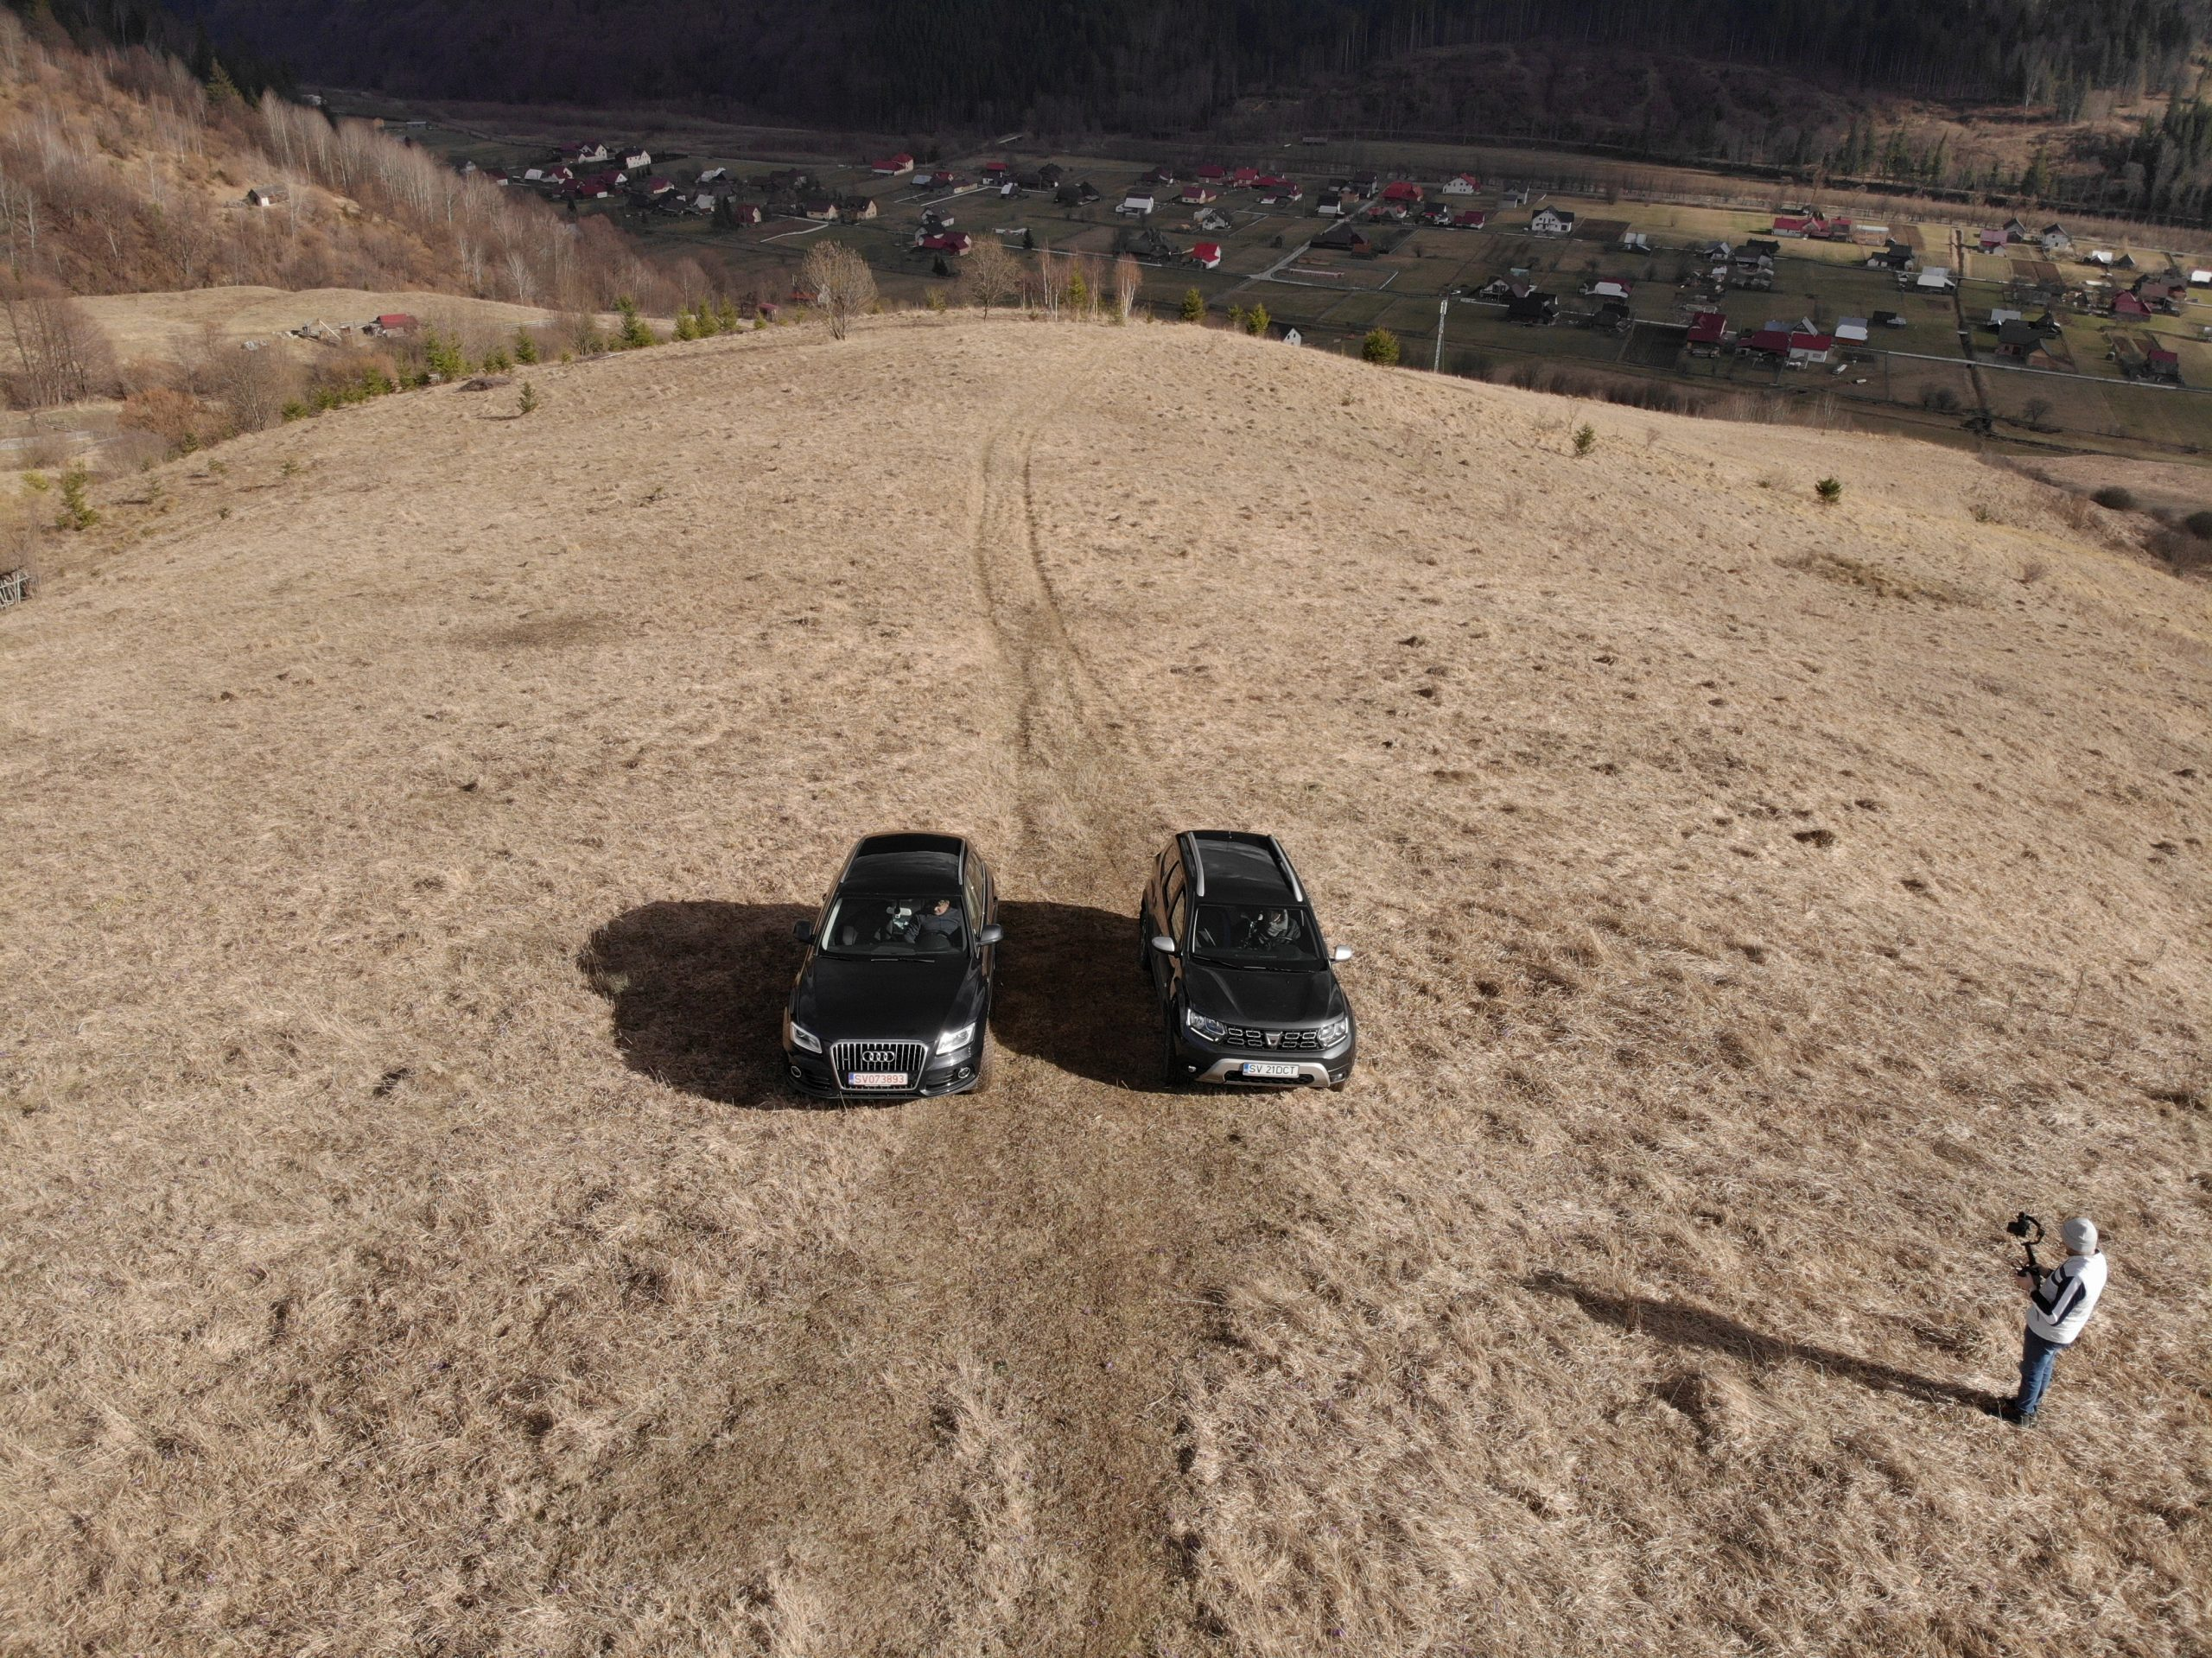 Duster and Audi captured from drone